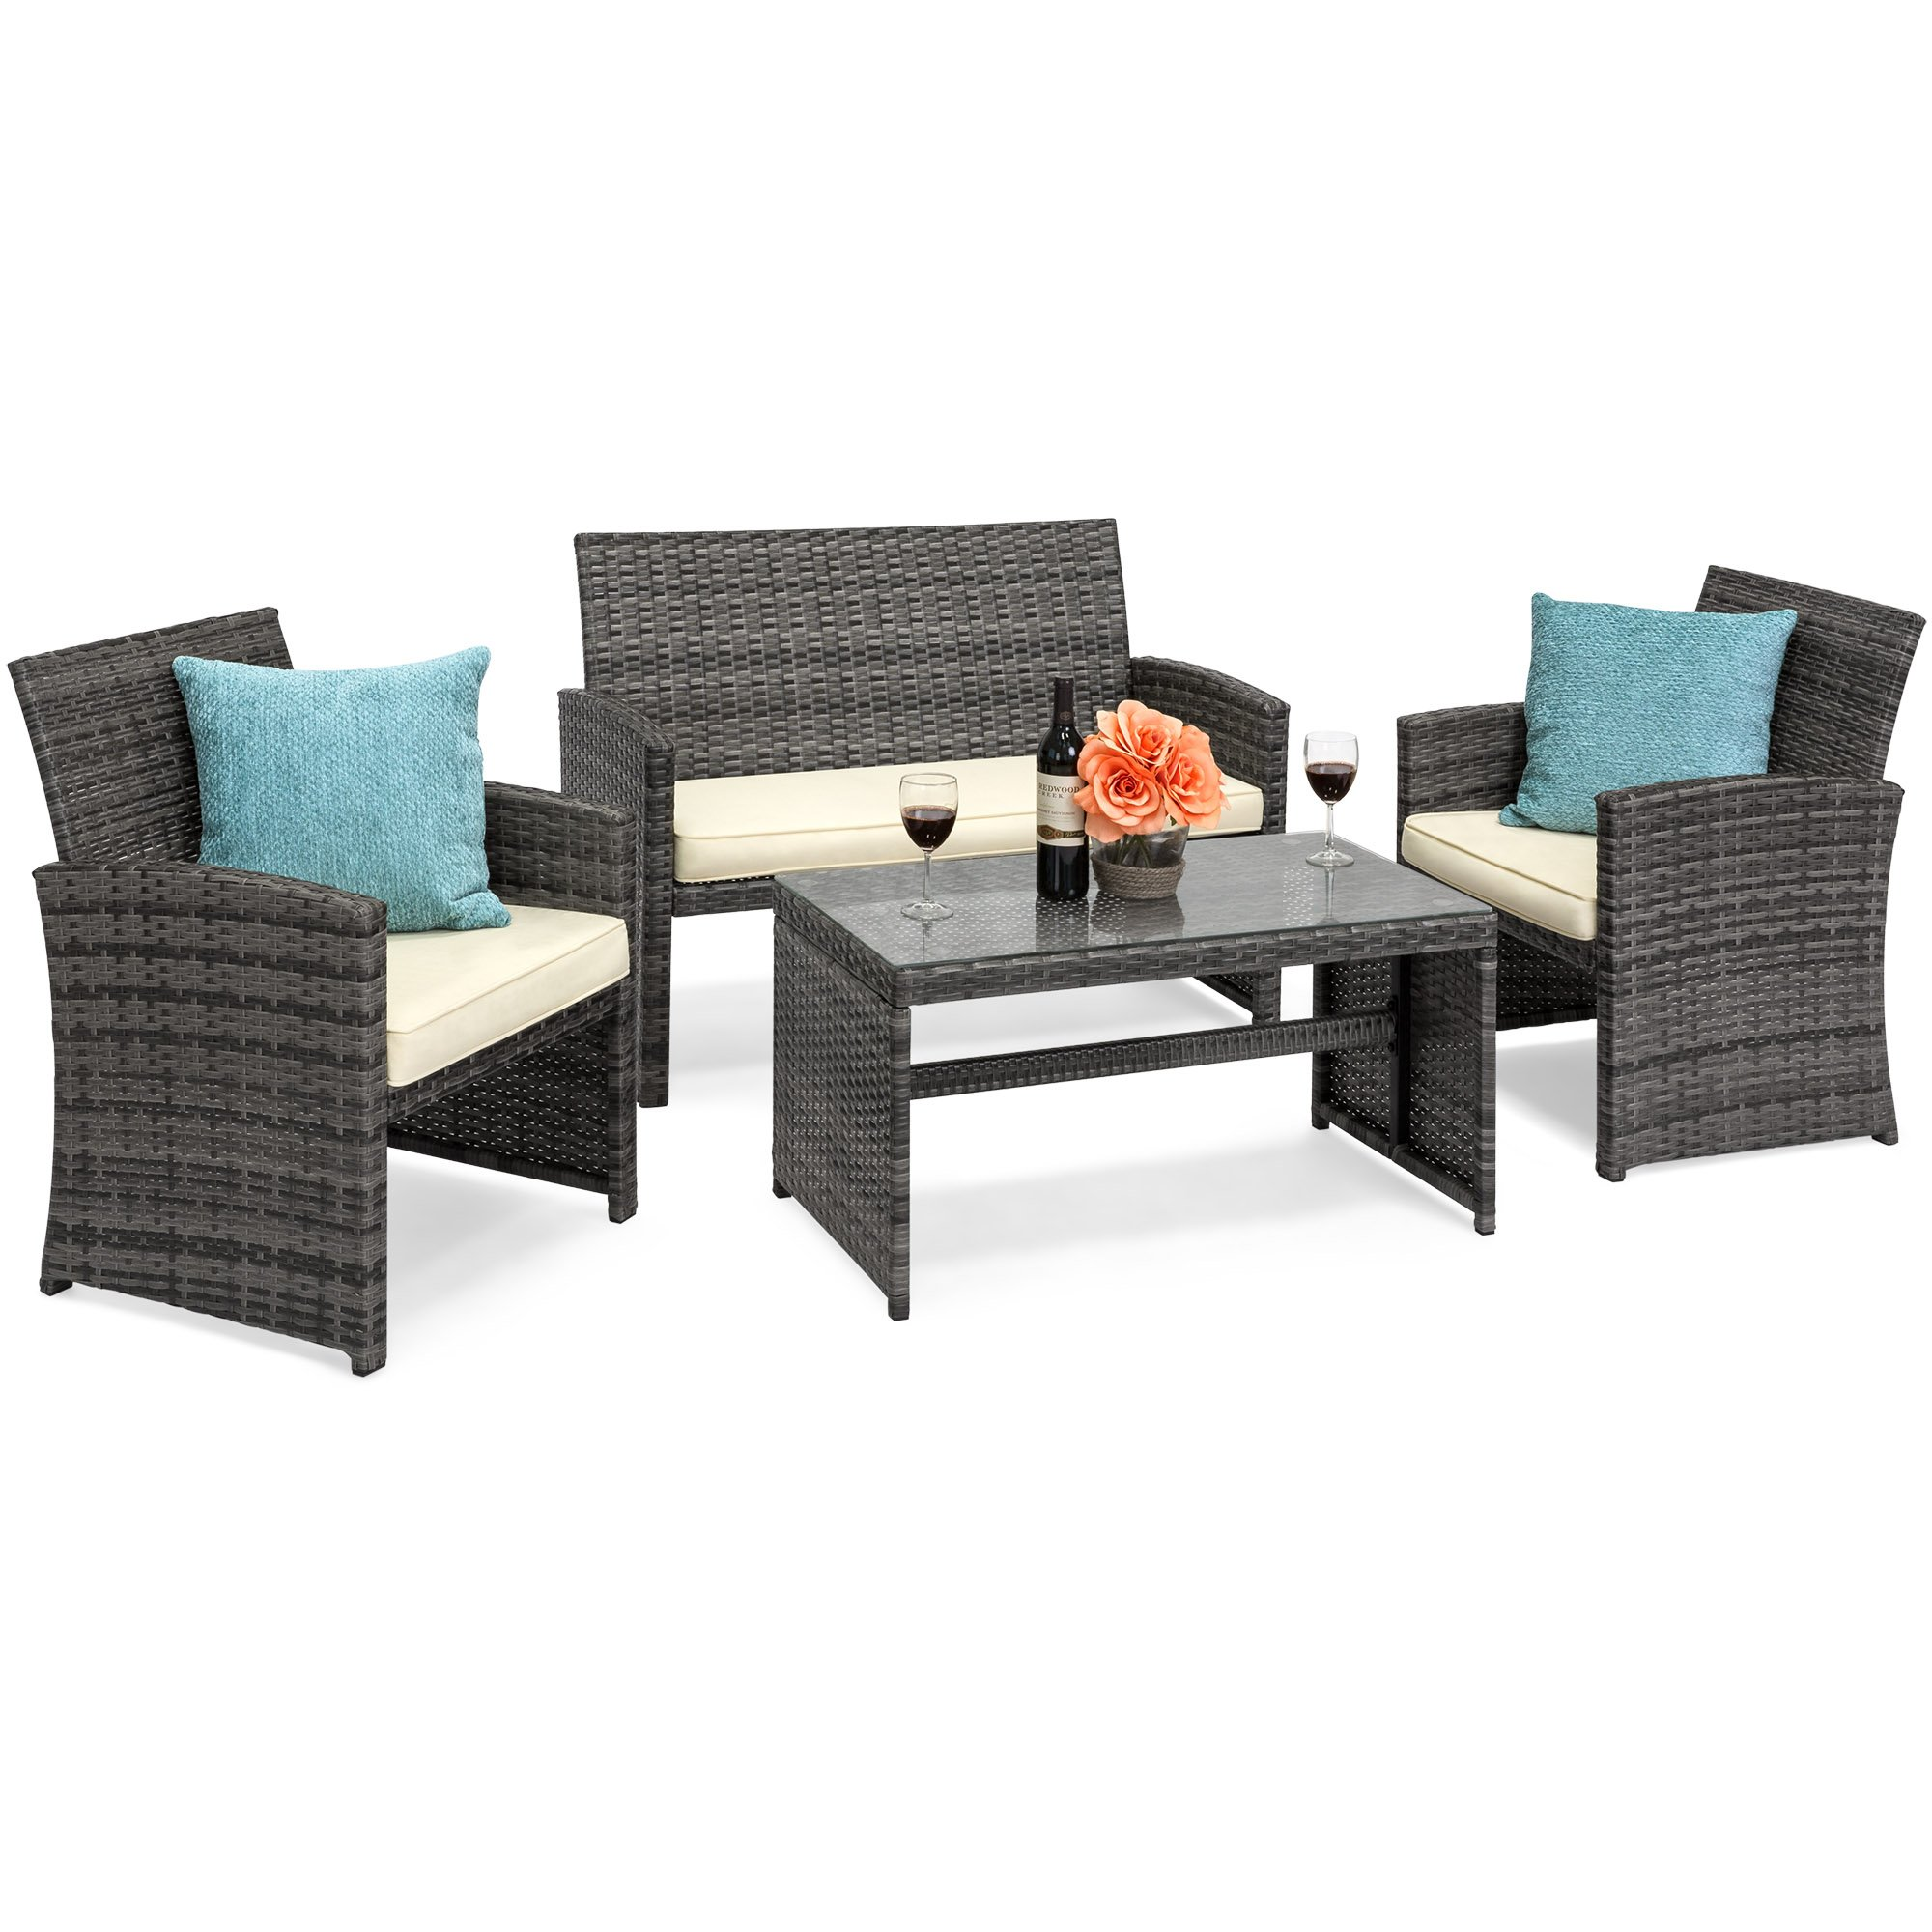 Best Choice Products 4-Piece Wicker Patio Furniture Set w/Tempered Glass, 3 Sofas, Table, Cushioned Seats - Gray